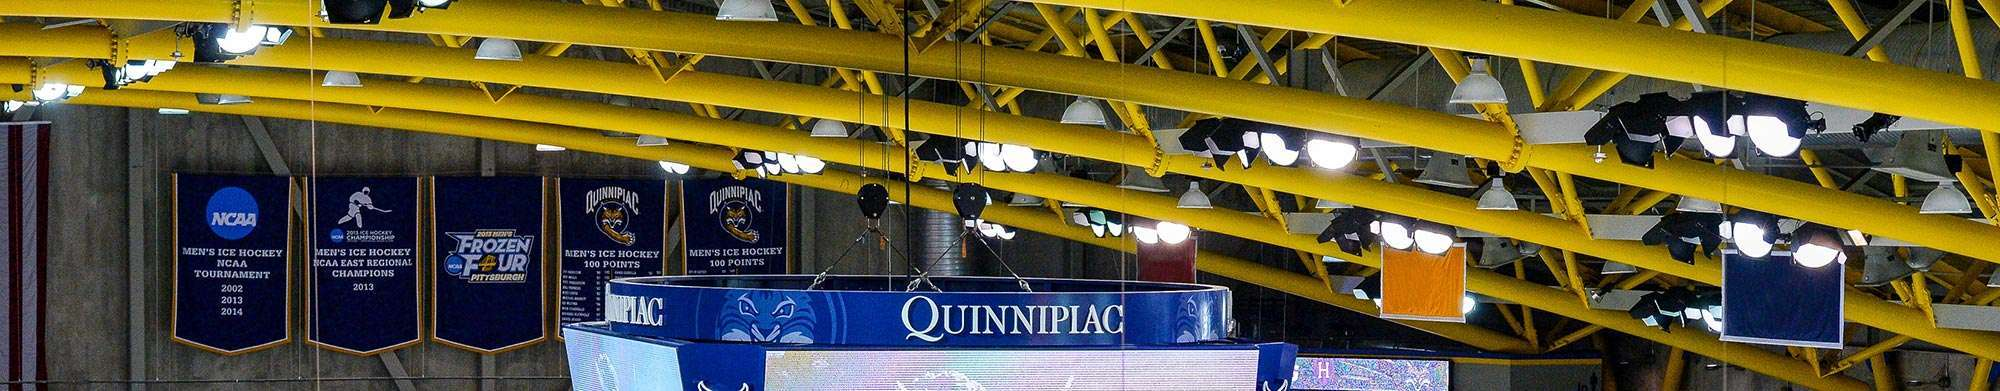 MS in sports journalism students covering a Quinnipiac University hockey game